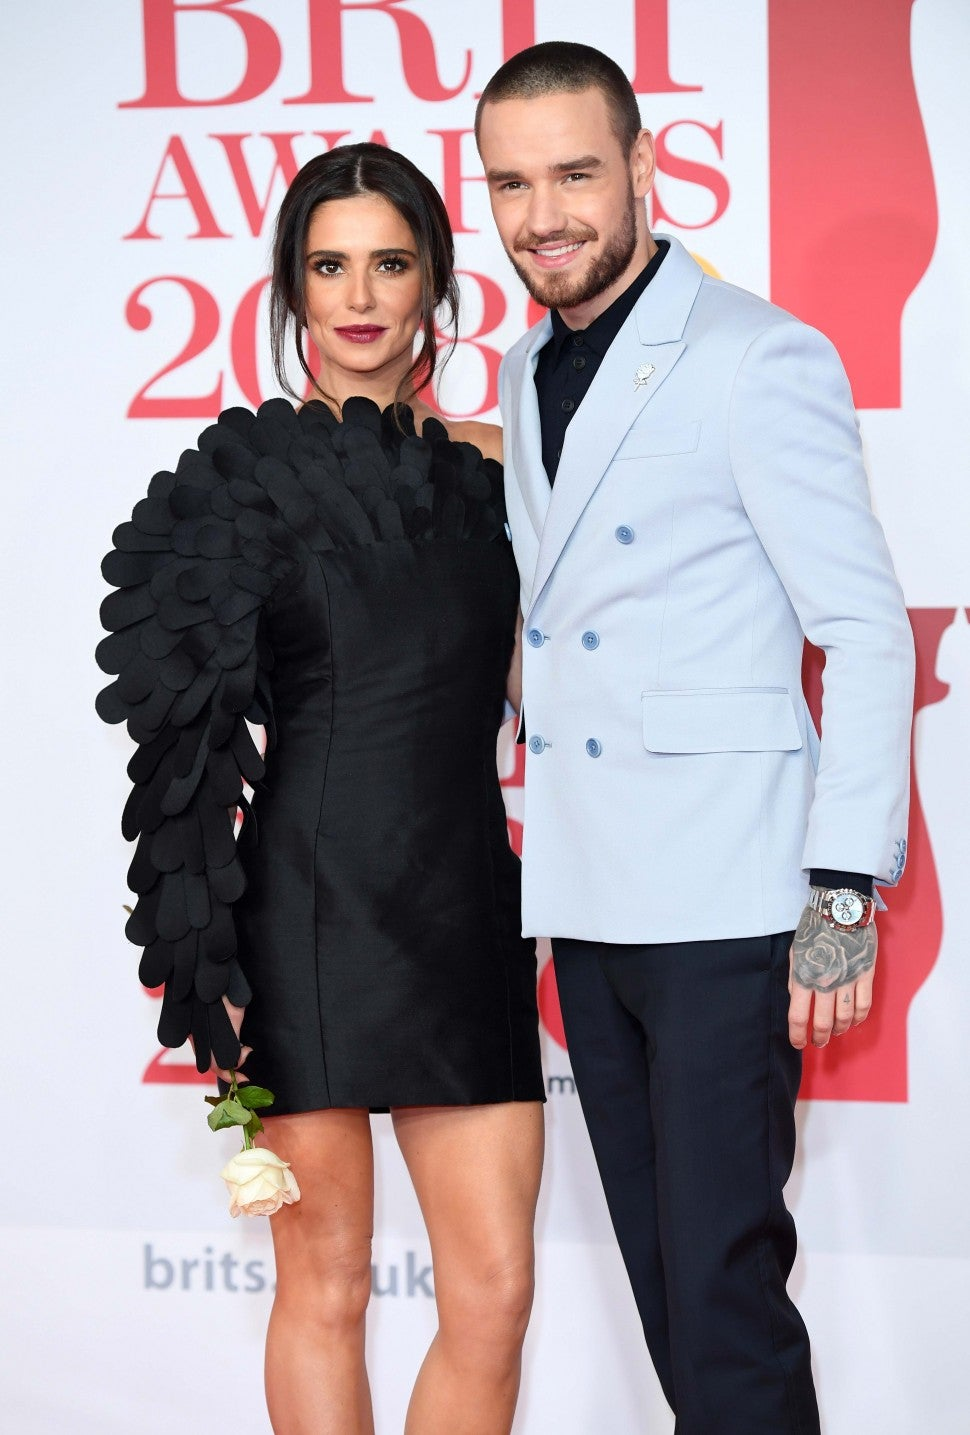 Liam Payne Admits He S Fragile At Times Following Cheryl Cole Breakup Entertainment Tonight